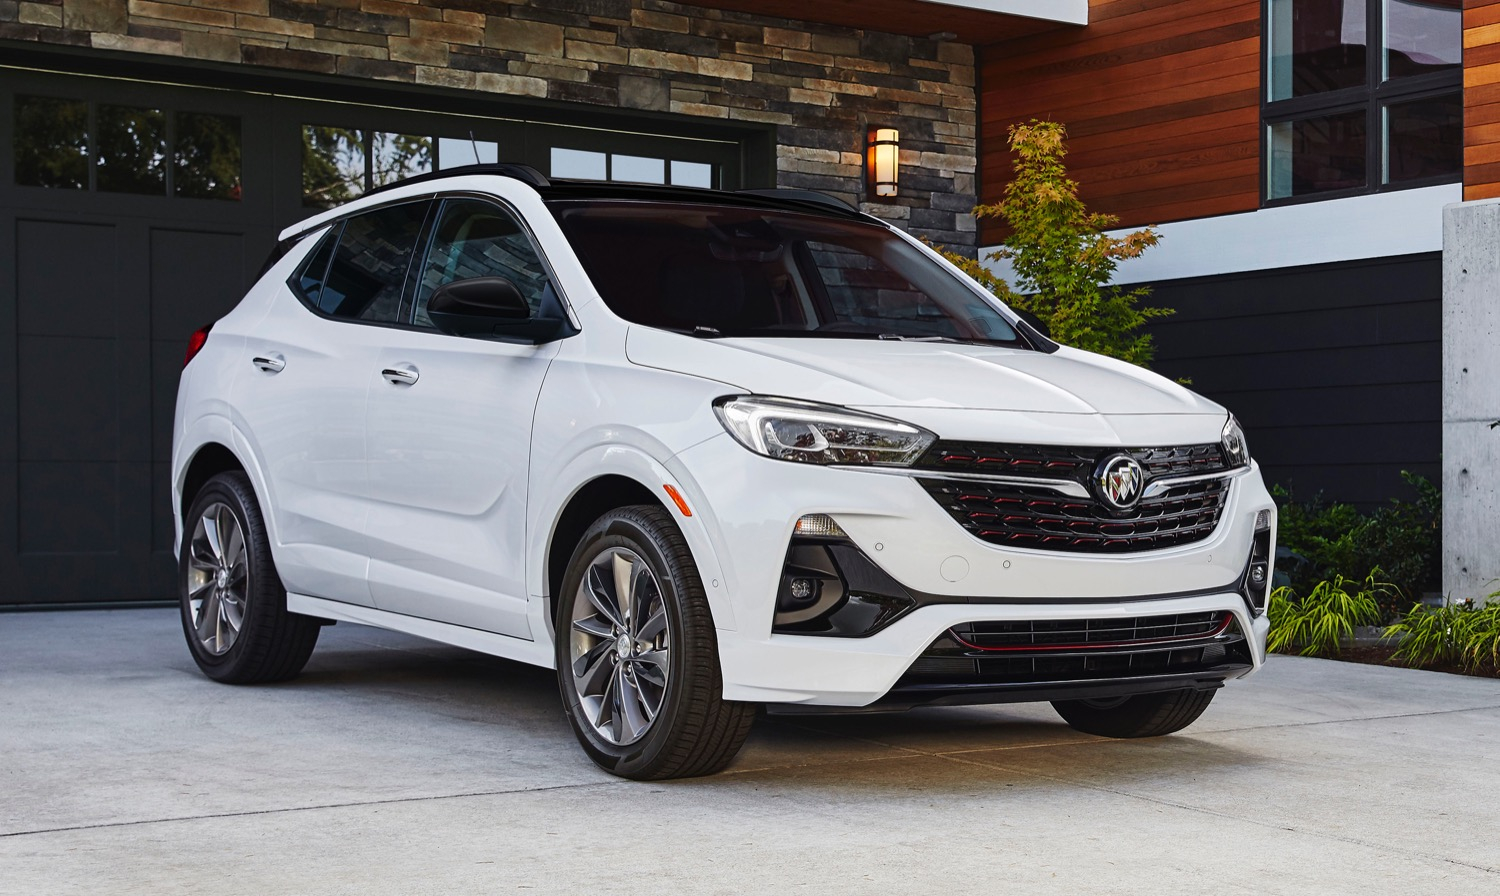 Buick Encore Gx Ad Released: Video   Gm Authority When Will The New 2022 Buick Encore Gx Be Available